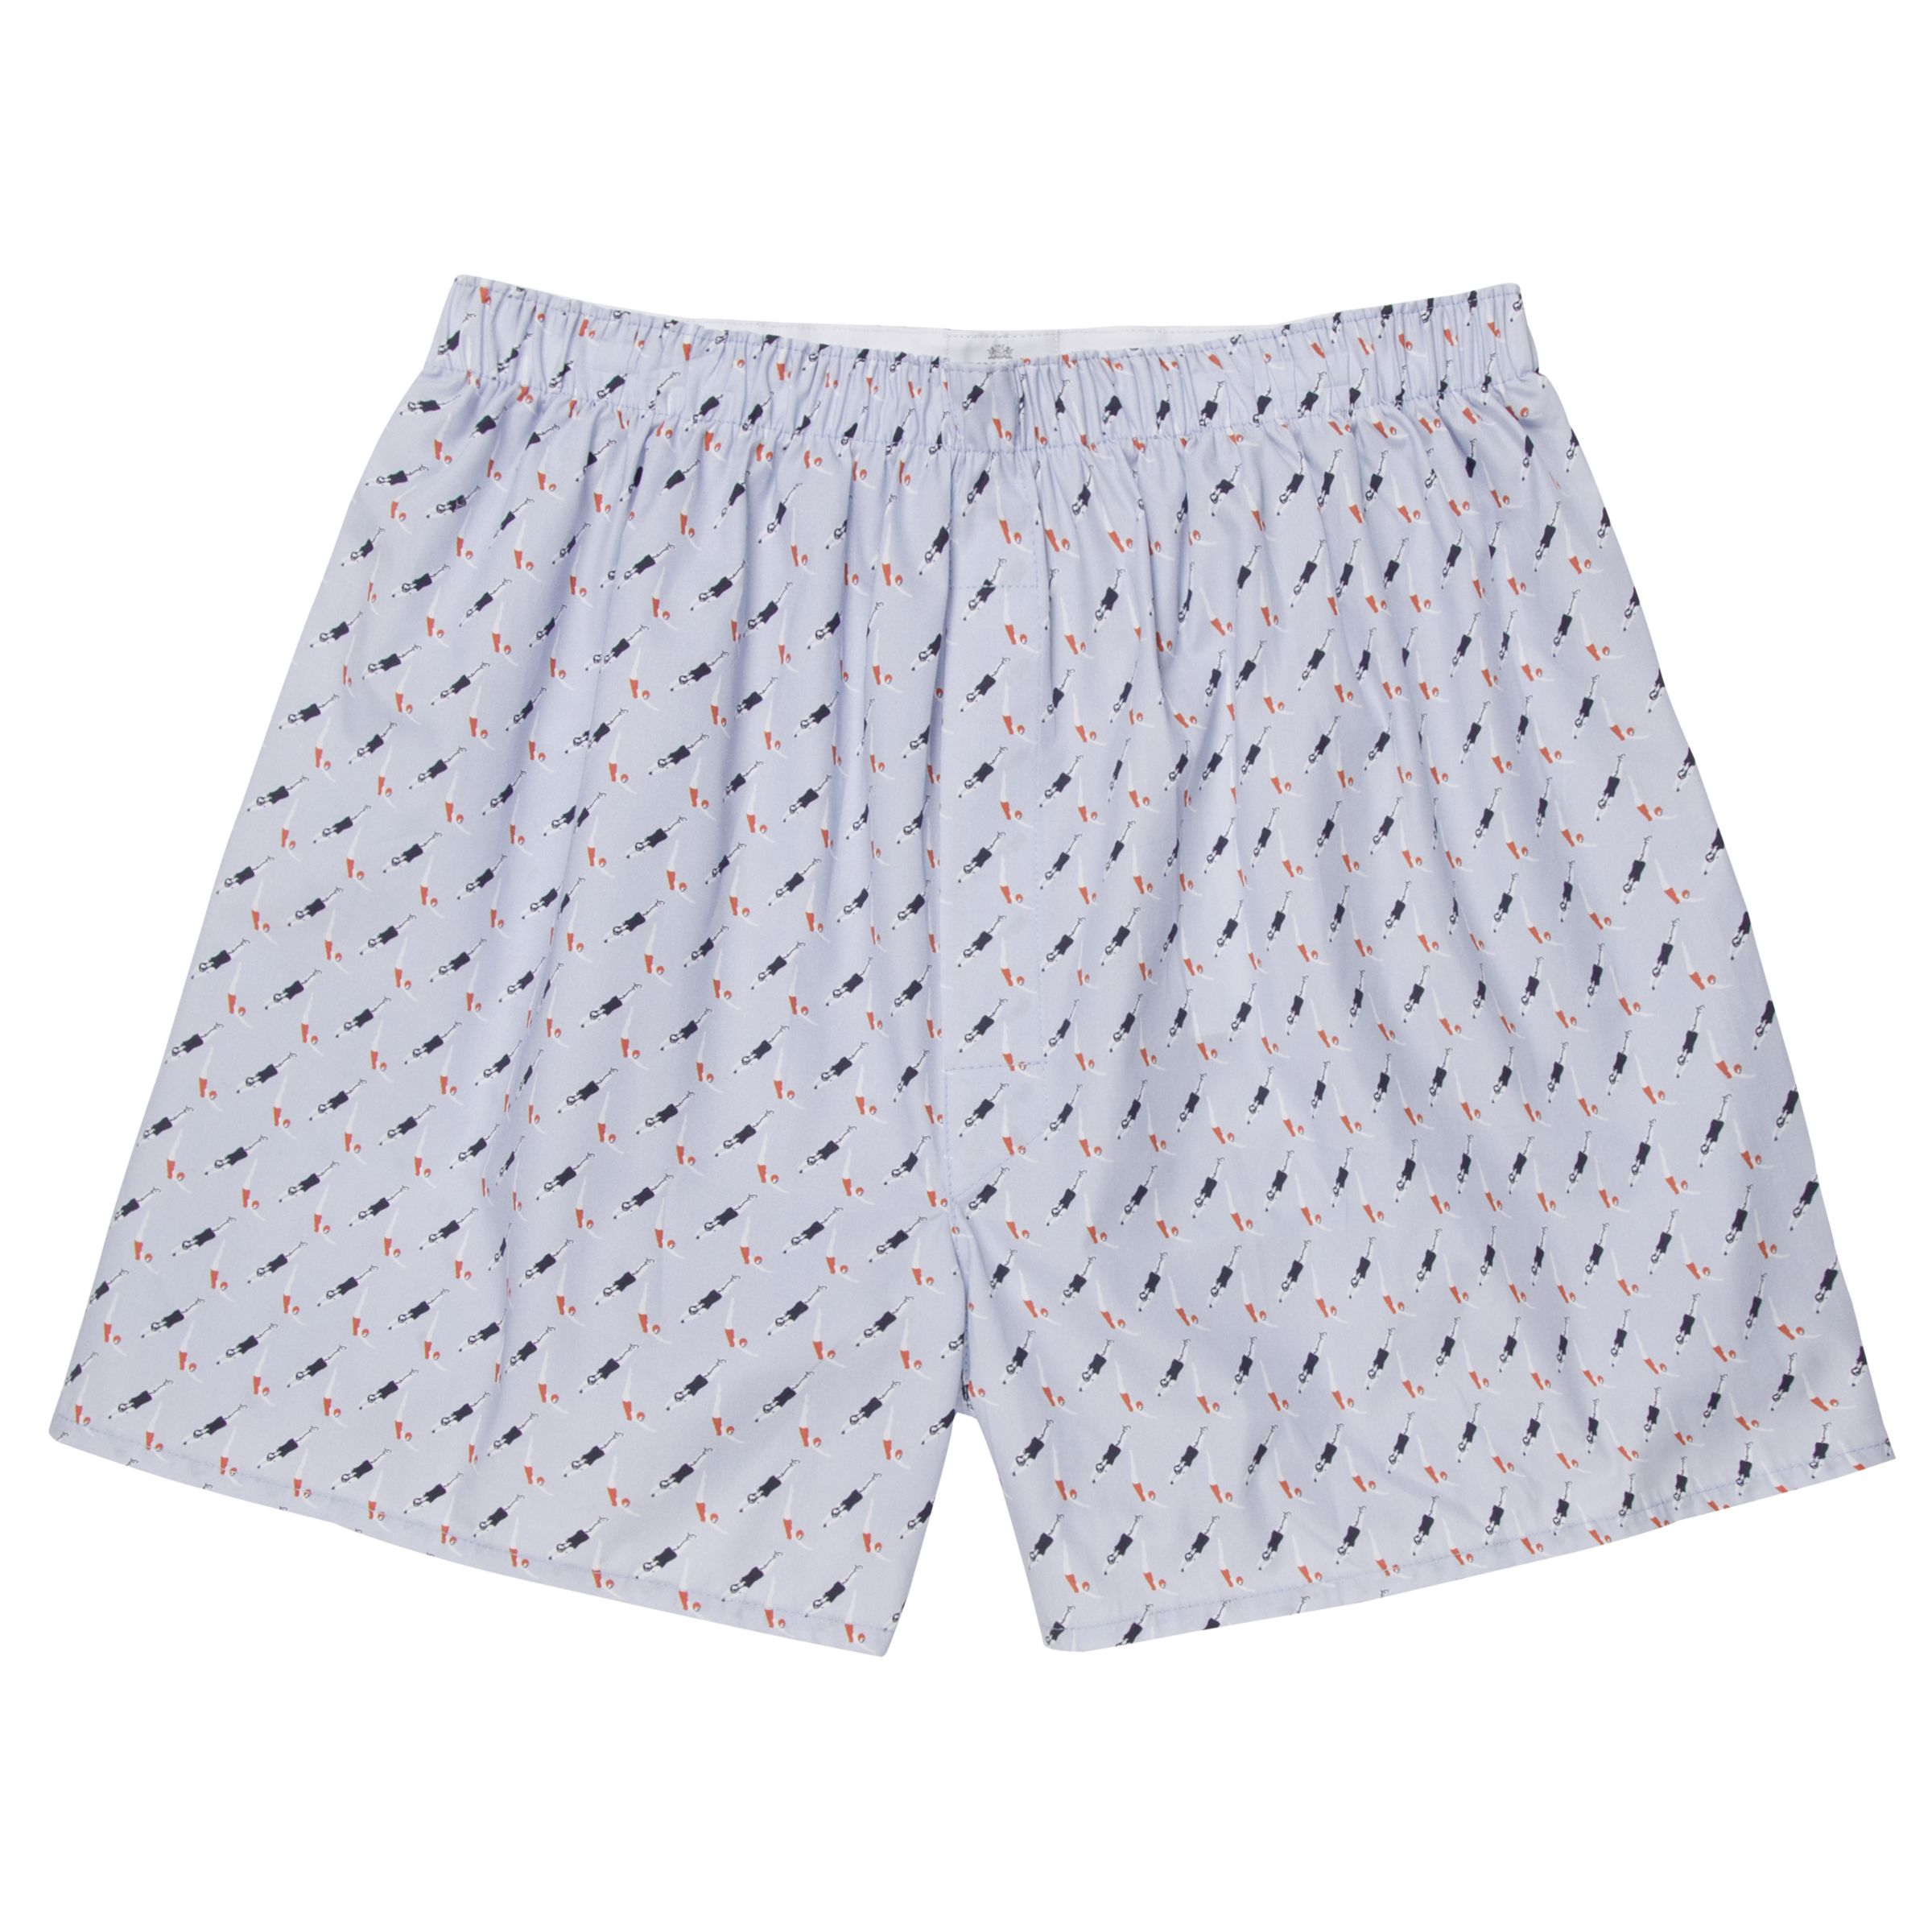 Sunspel Sunspel Classic Diver Print Cotton Boxer Shorts, Blue